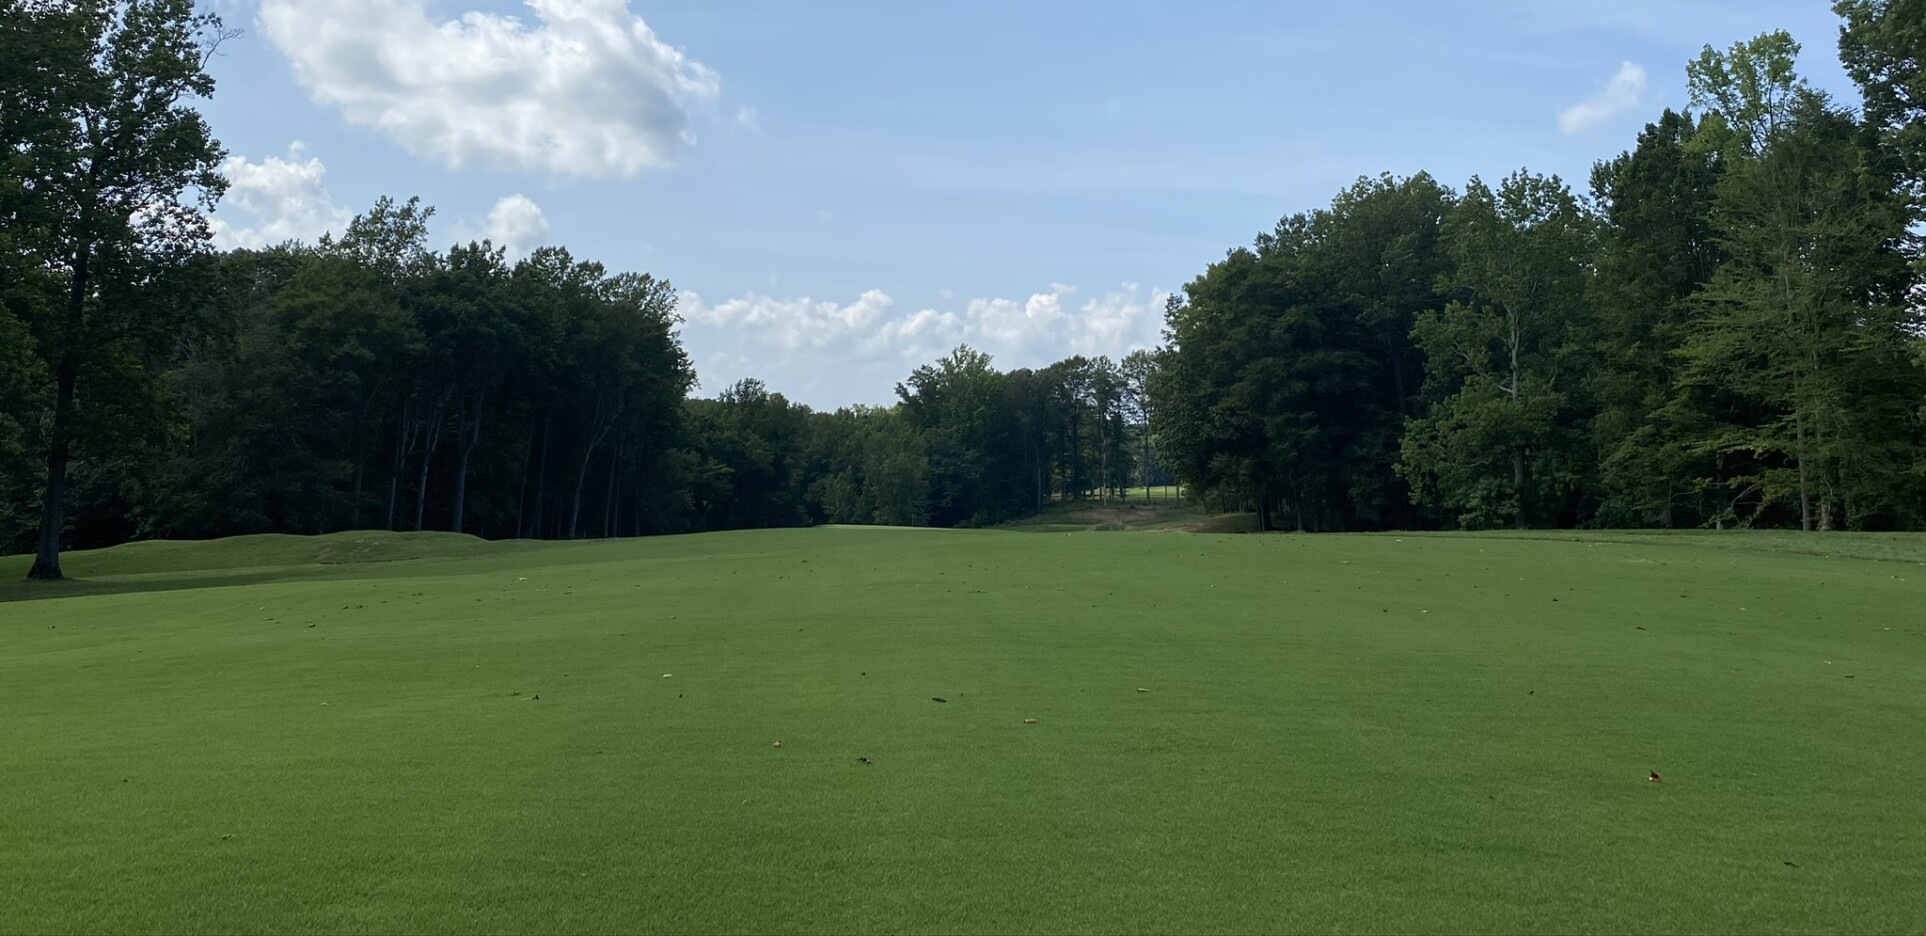 The fairway of hole number 1 being grown in during summer 2020 at the Preserve at Eisenhower Golf Course